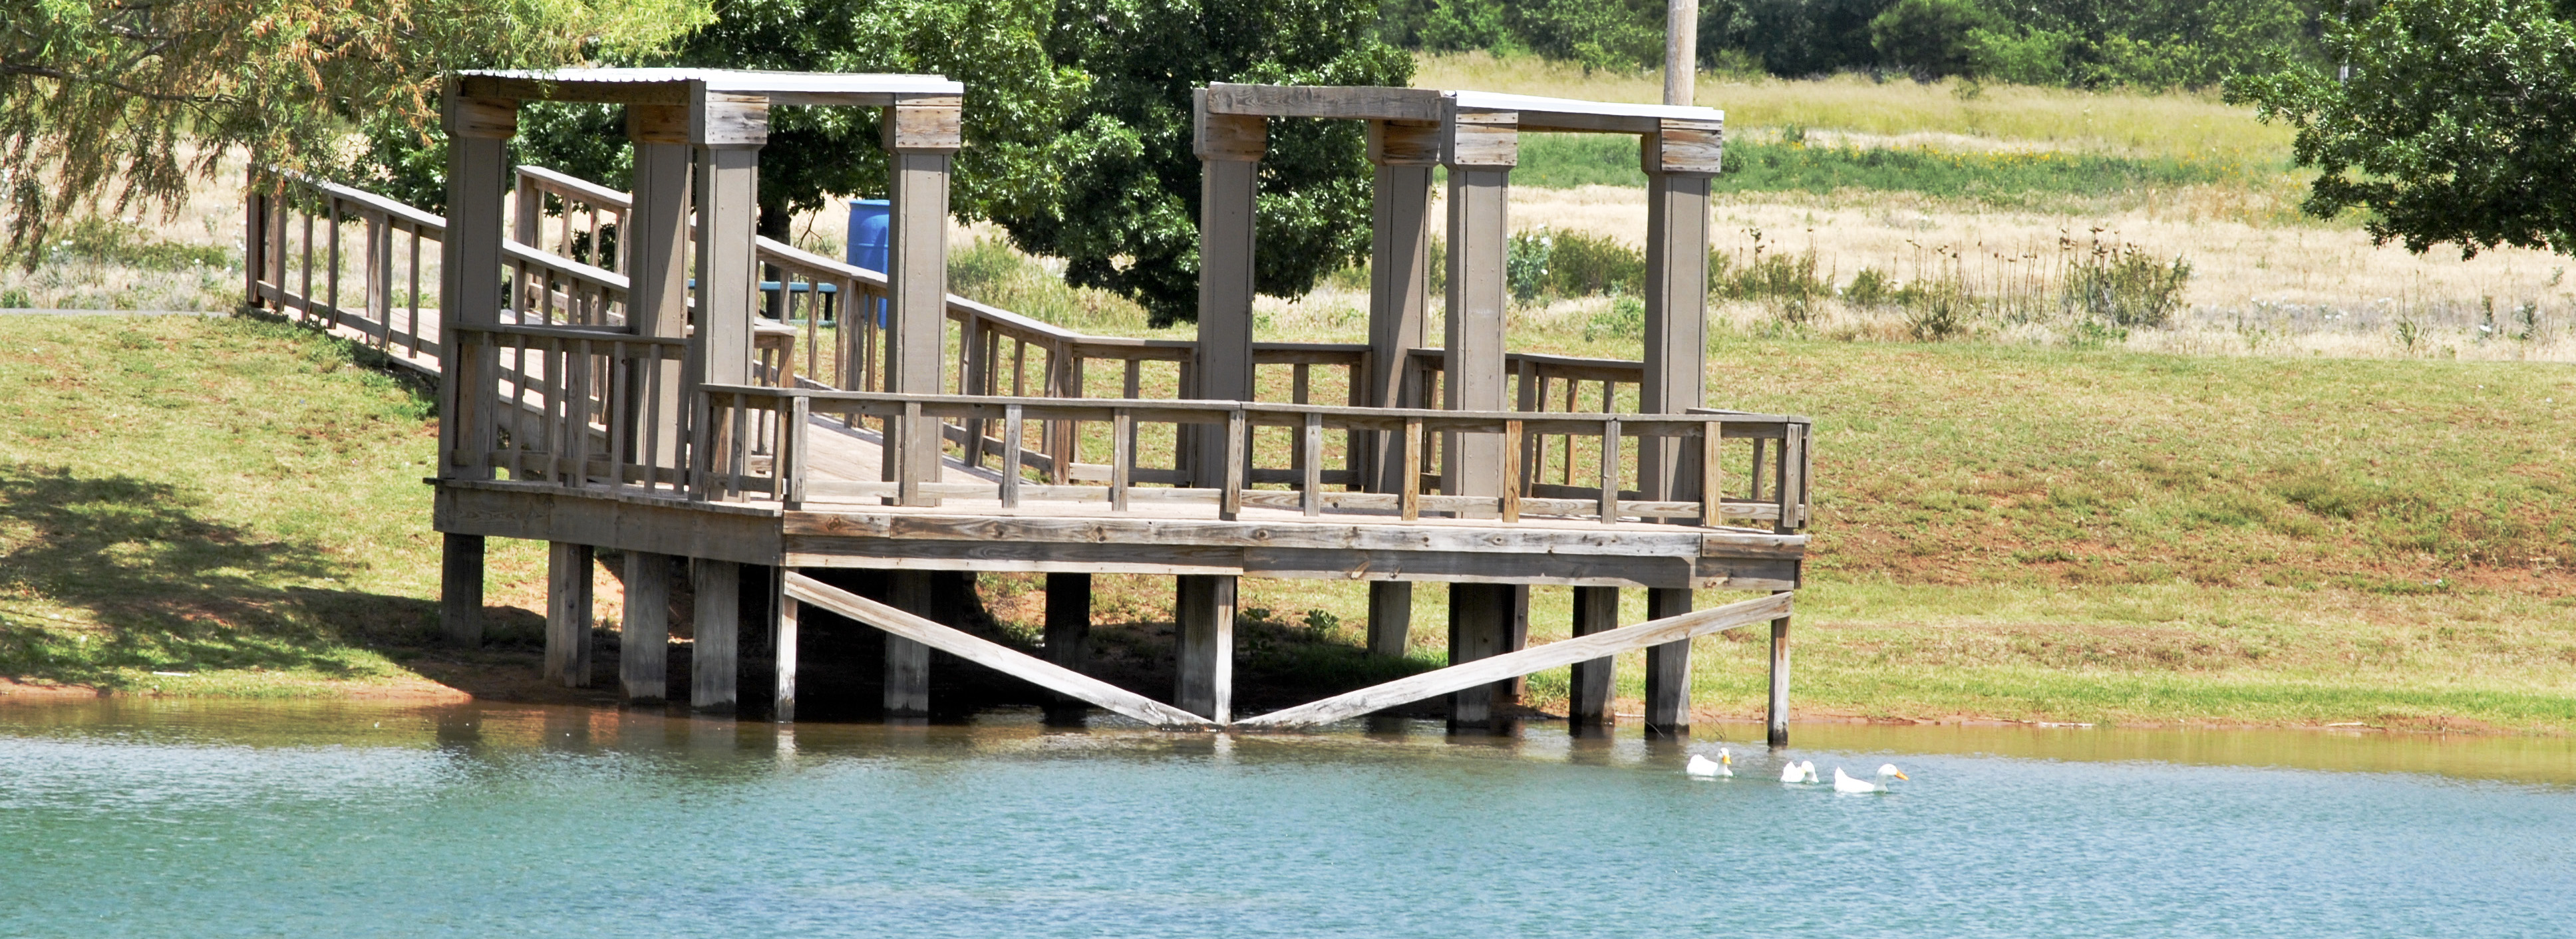 picture of the Ole Fishin Hole dock